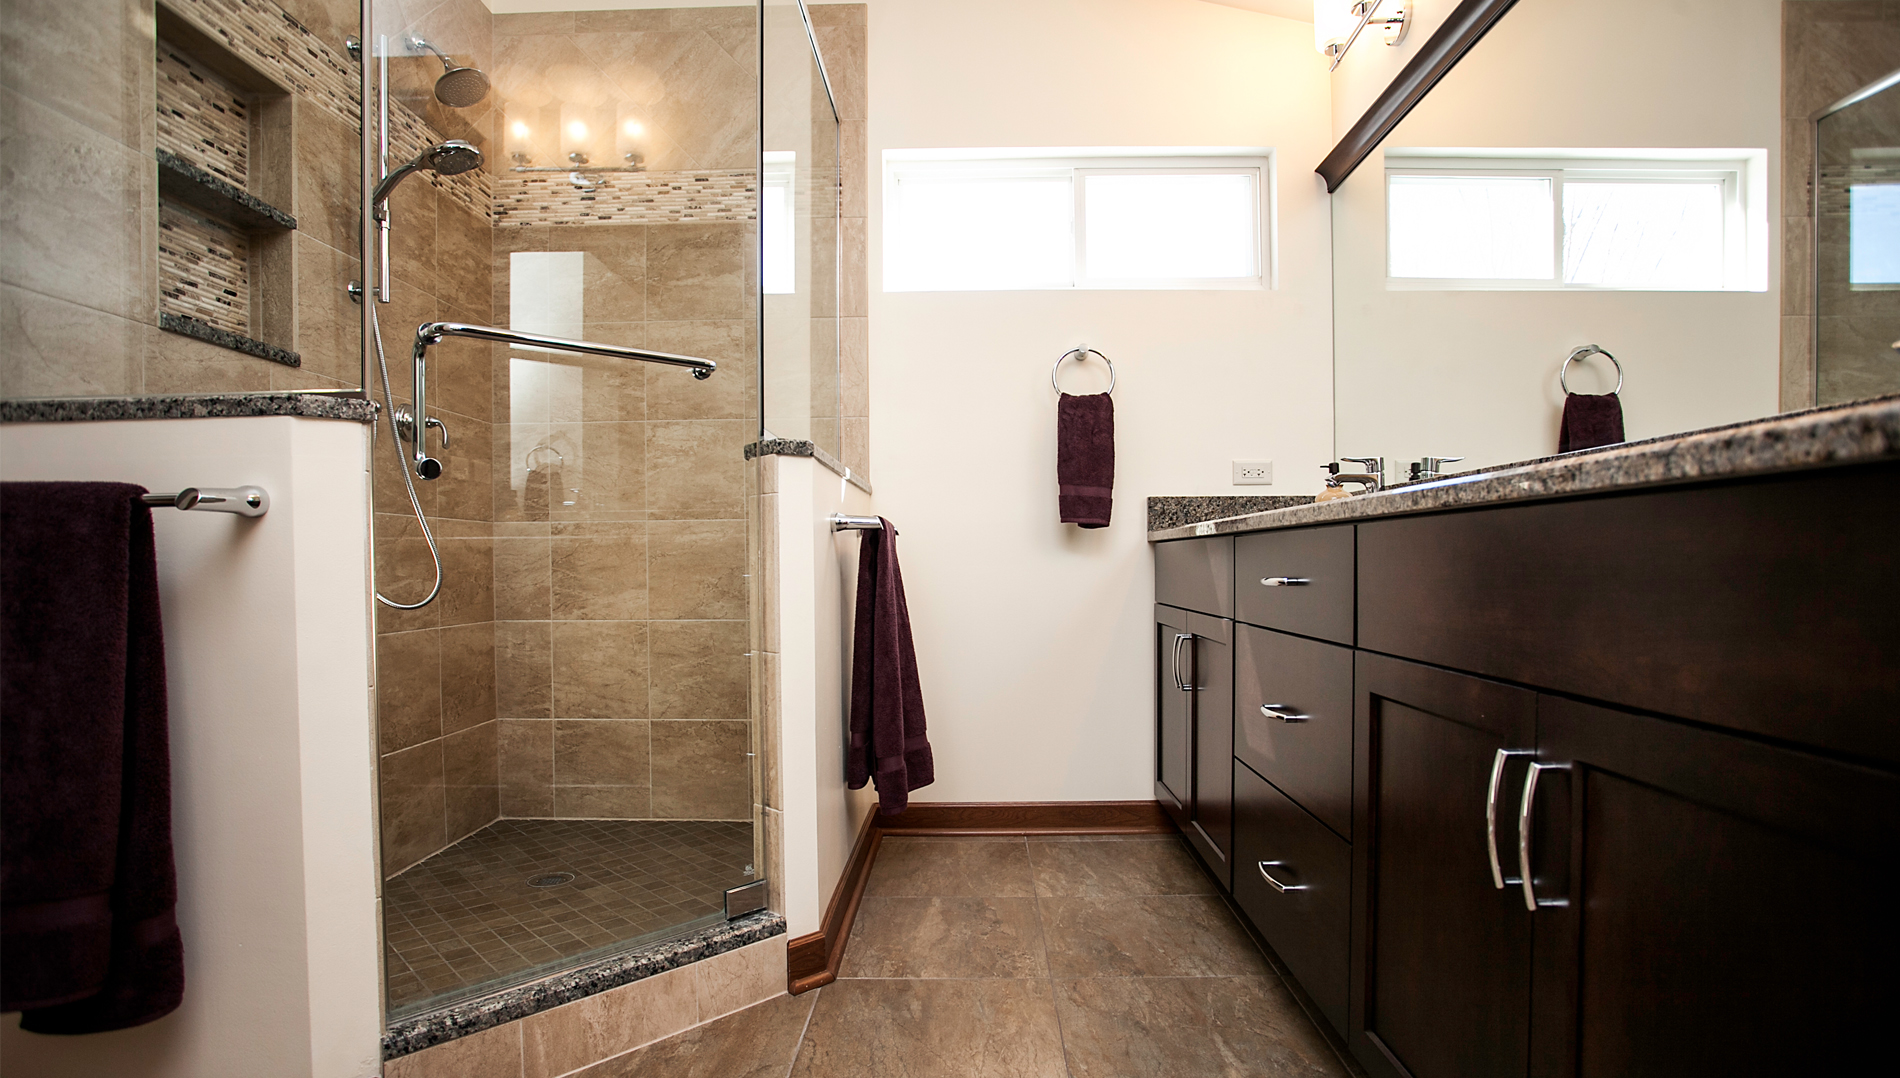 The Homeowners Elected To Remove The Tub In Favor Of A